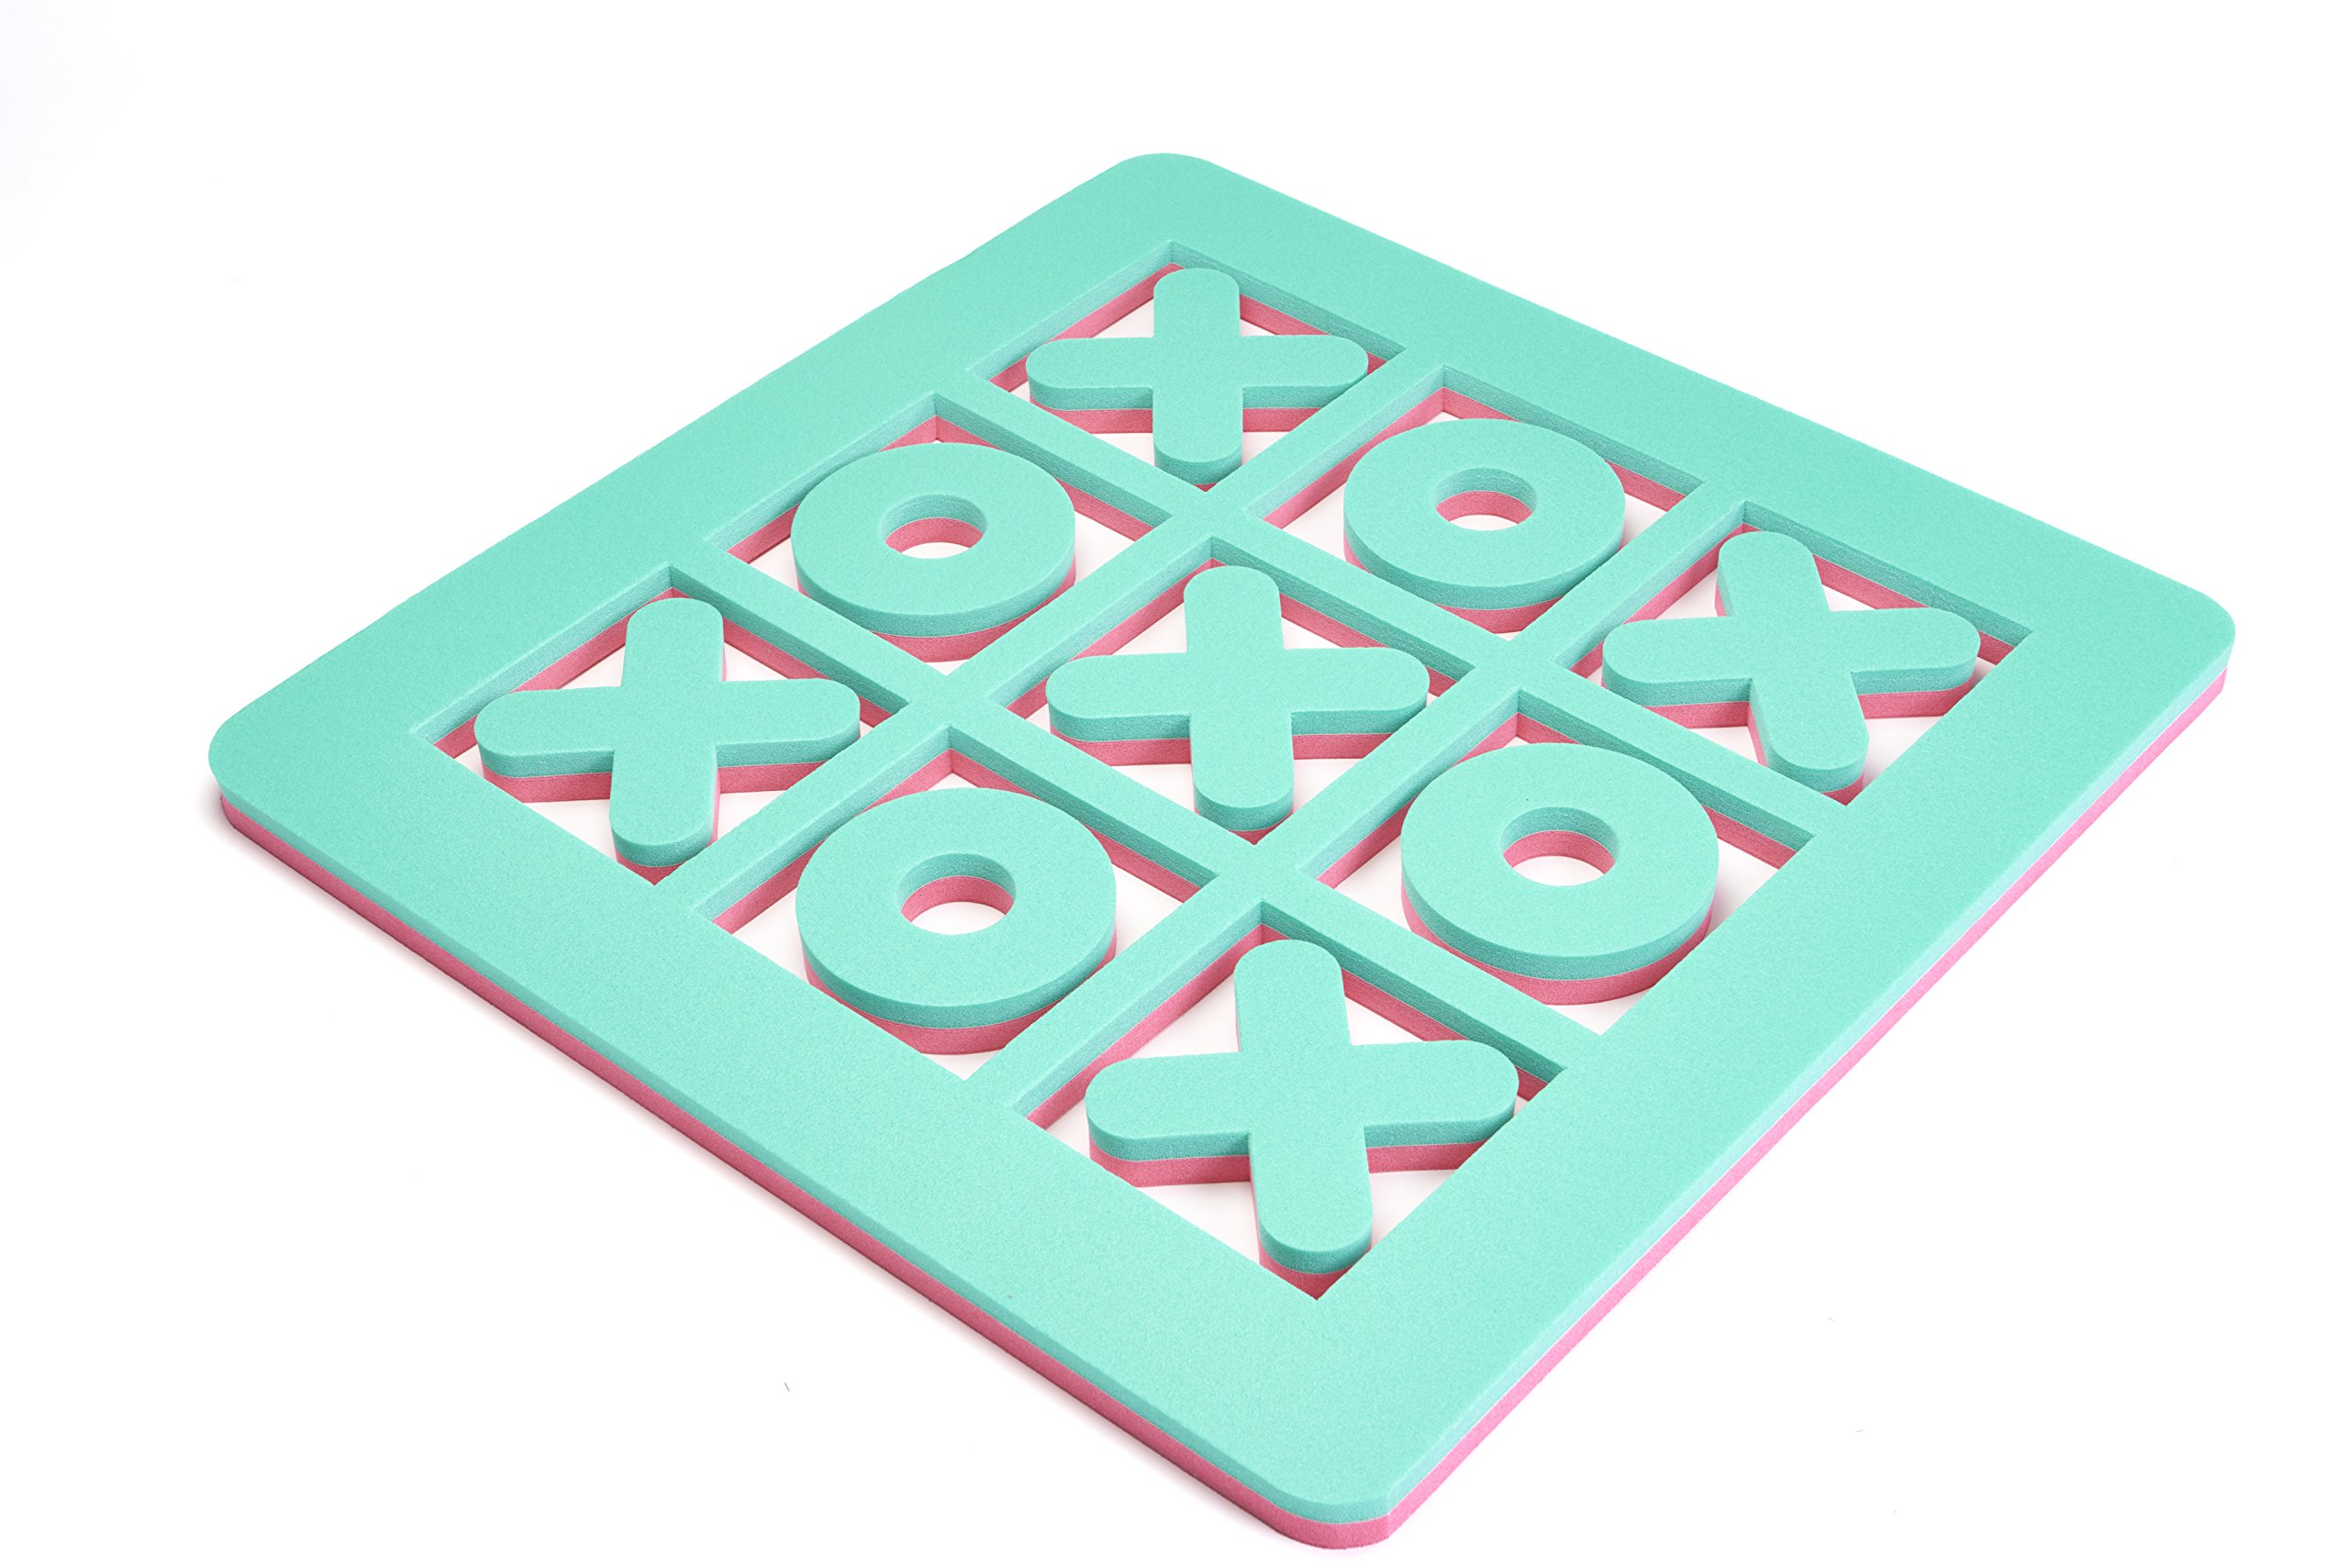 Floatation iQ H2O 3-In-A-Row - Floating Tic-Tac-Toe Pool Game - Made in the USA w/Durable (PE) Tear Resistant Foam - Mini Size (Pink/Turquoise)